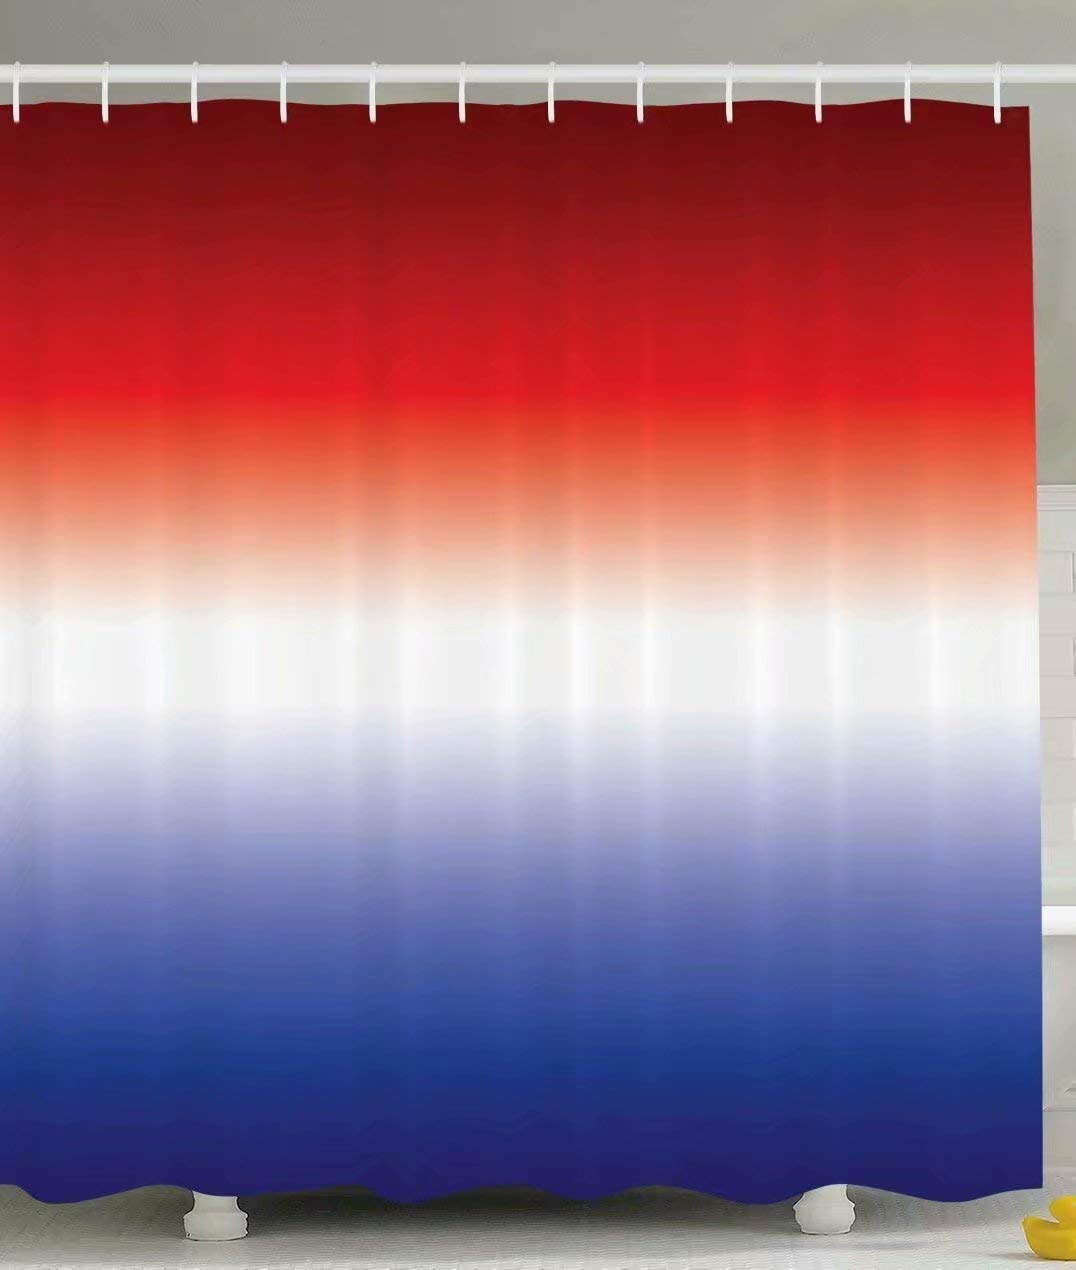 KANATSIU Red White Blue£¬Ombre Colorful Design Inspirational Art Decor Shower Curtain,with 12 plactic hooks,100% Made of Polyester,Mildew Resistant & Machine Washable,Width x Heght is 60x72